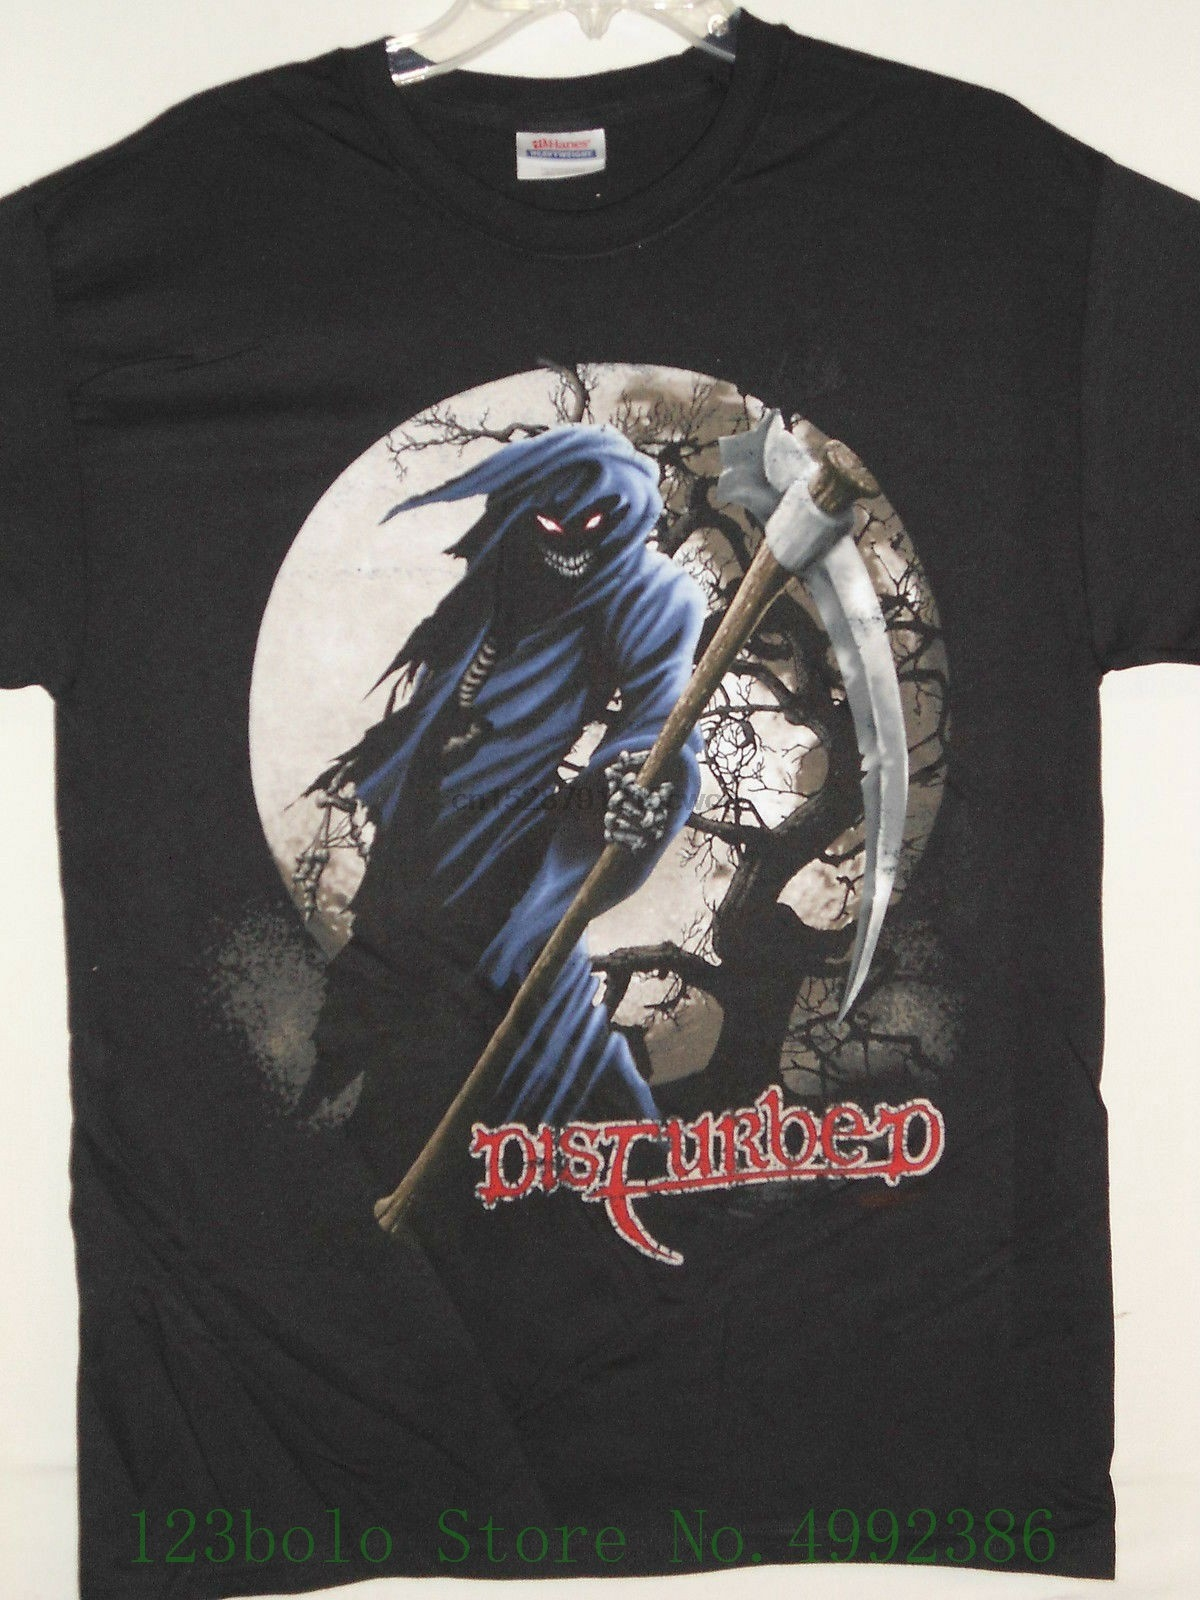 New - Disturbed Band Concert Music T Shirt Medium Popular Style Man T-shirt